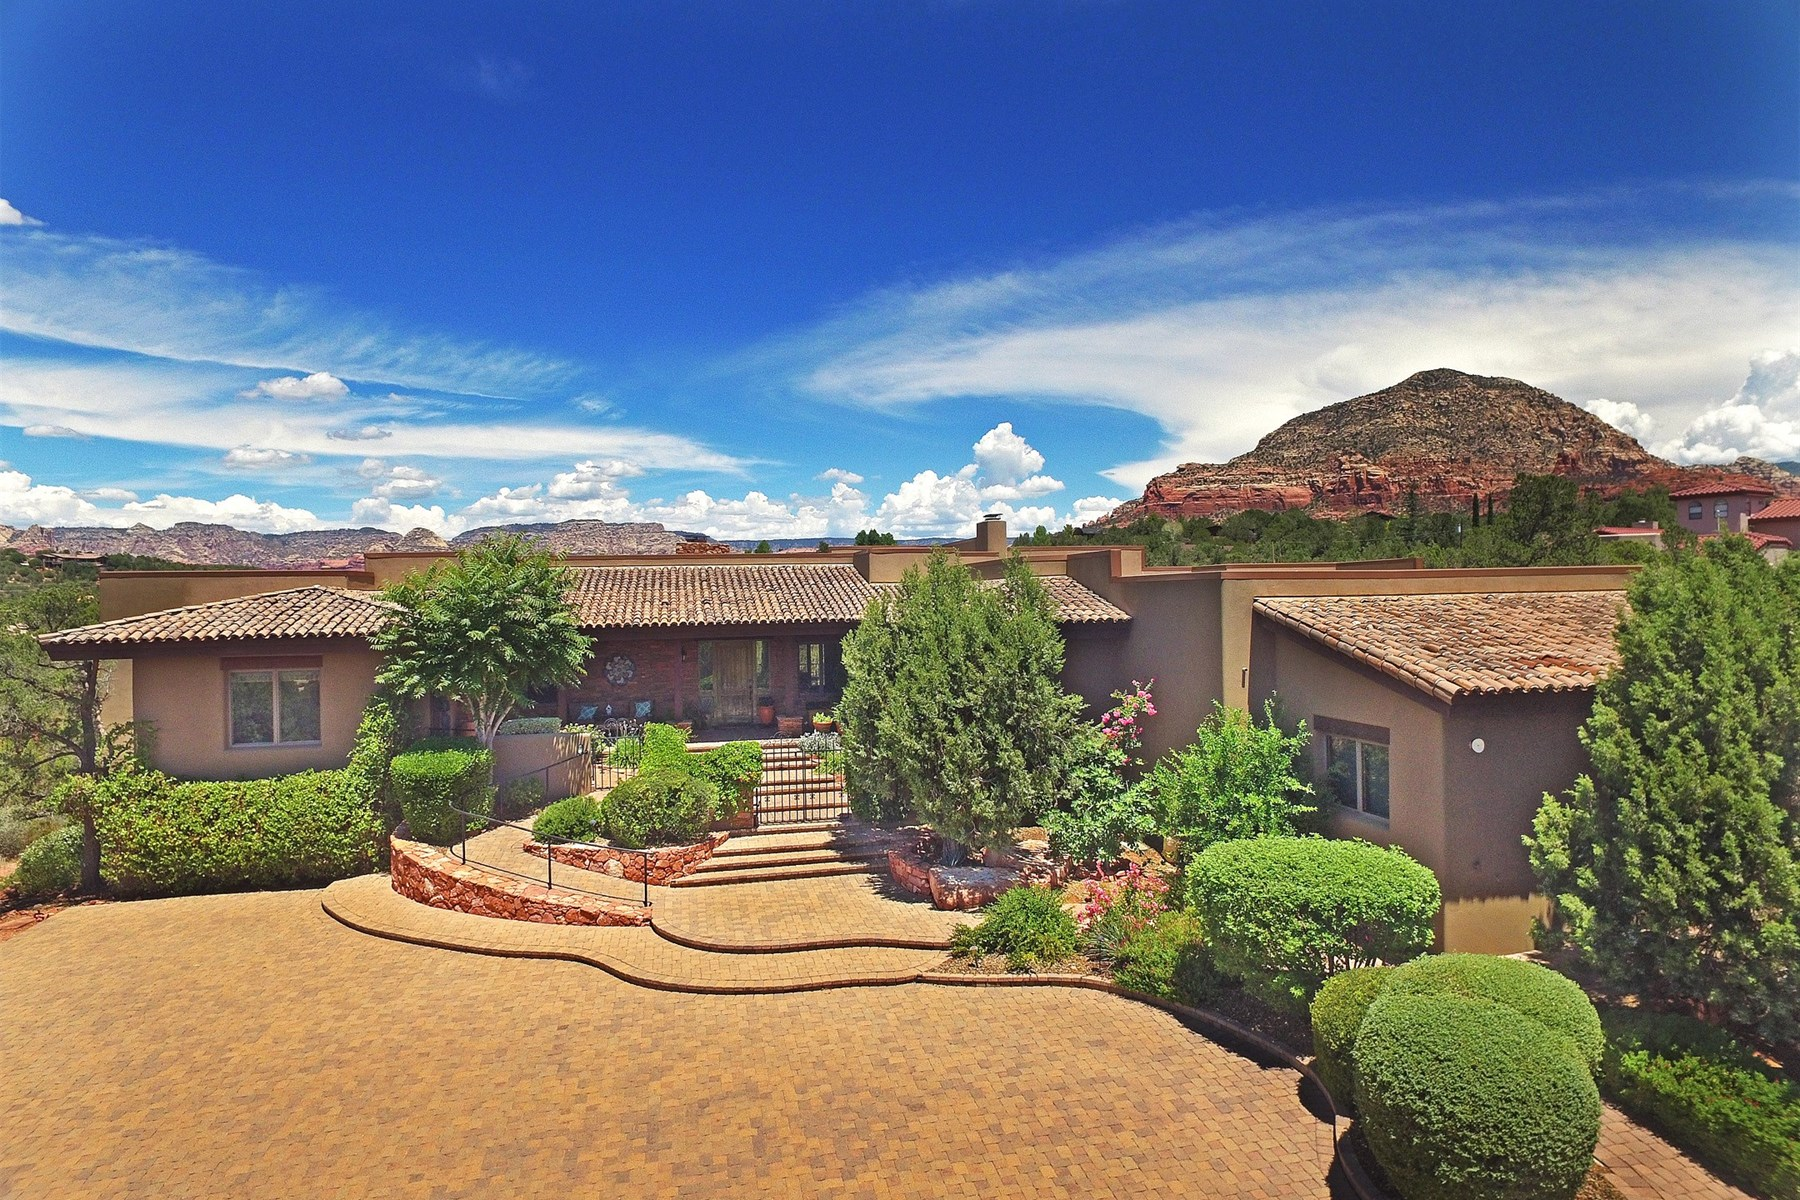 獨棟家庭住宅 為 出售 在 Gorgeous custom-designed luxury home 41 E Dove Wing Drive Sedona, 亞利桑那州, 86336 美國